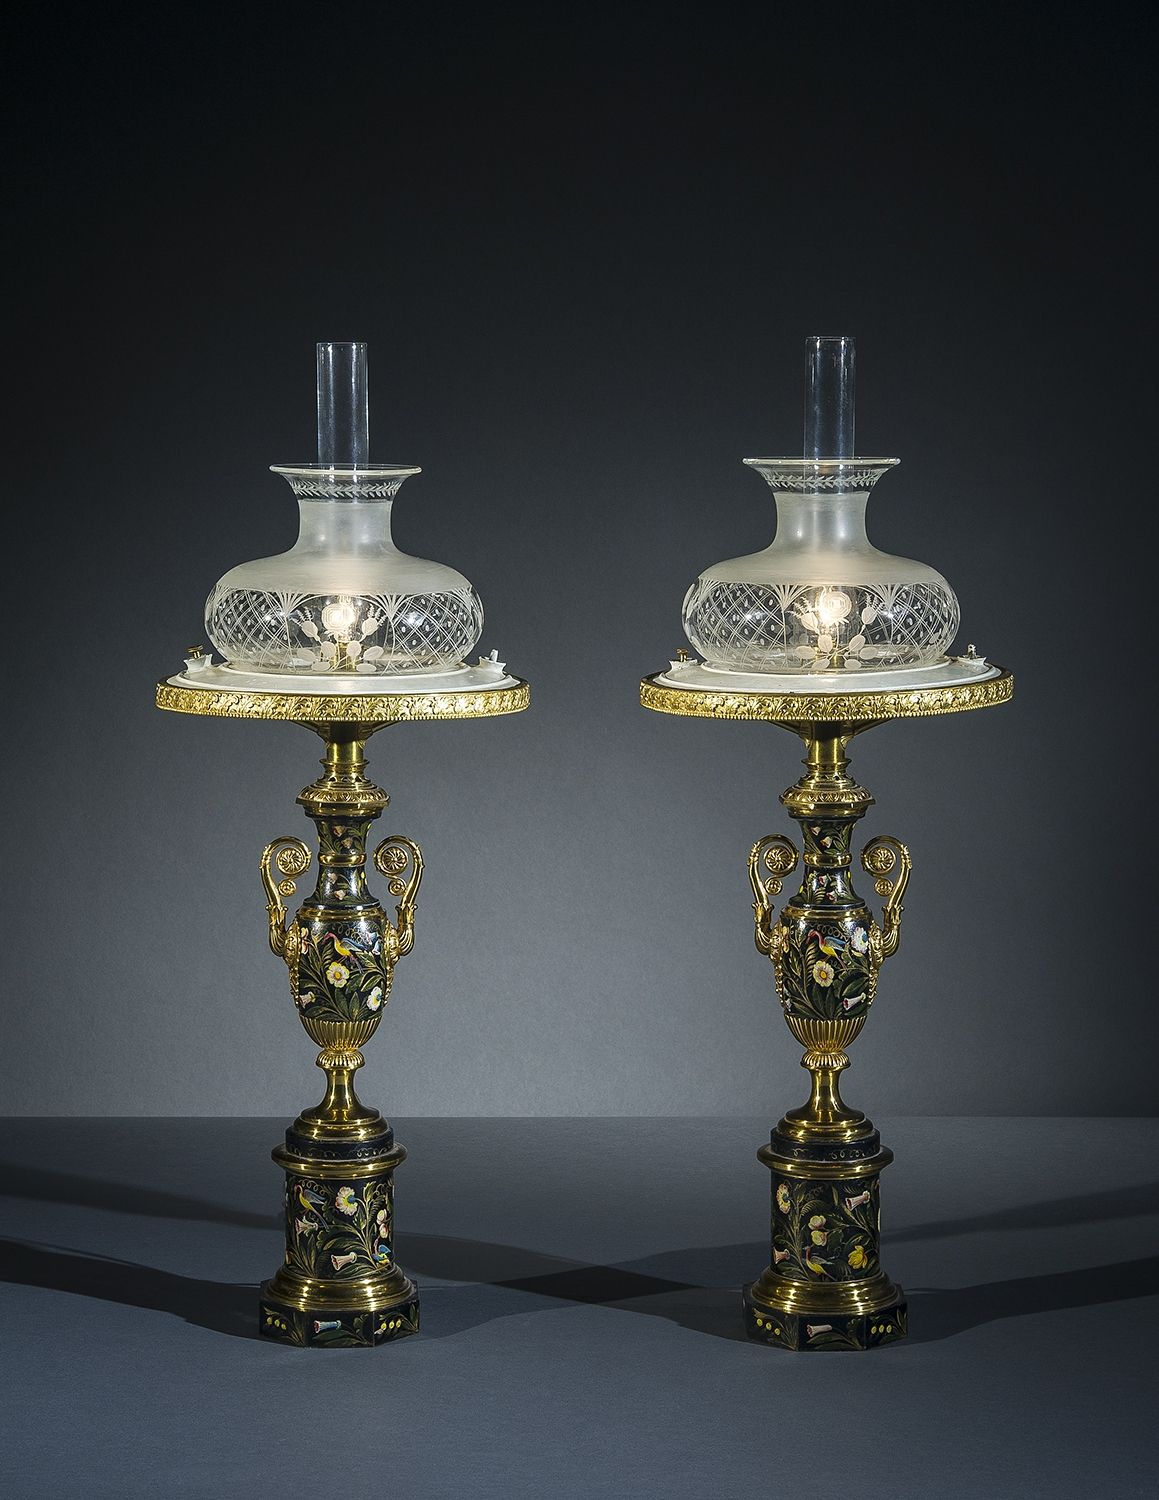 Pair Sinumbra Lamps in the Restauration Taste, about 1825